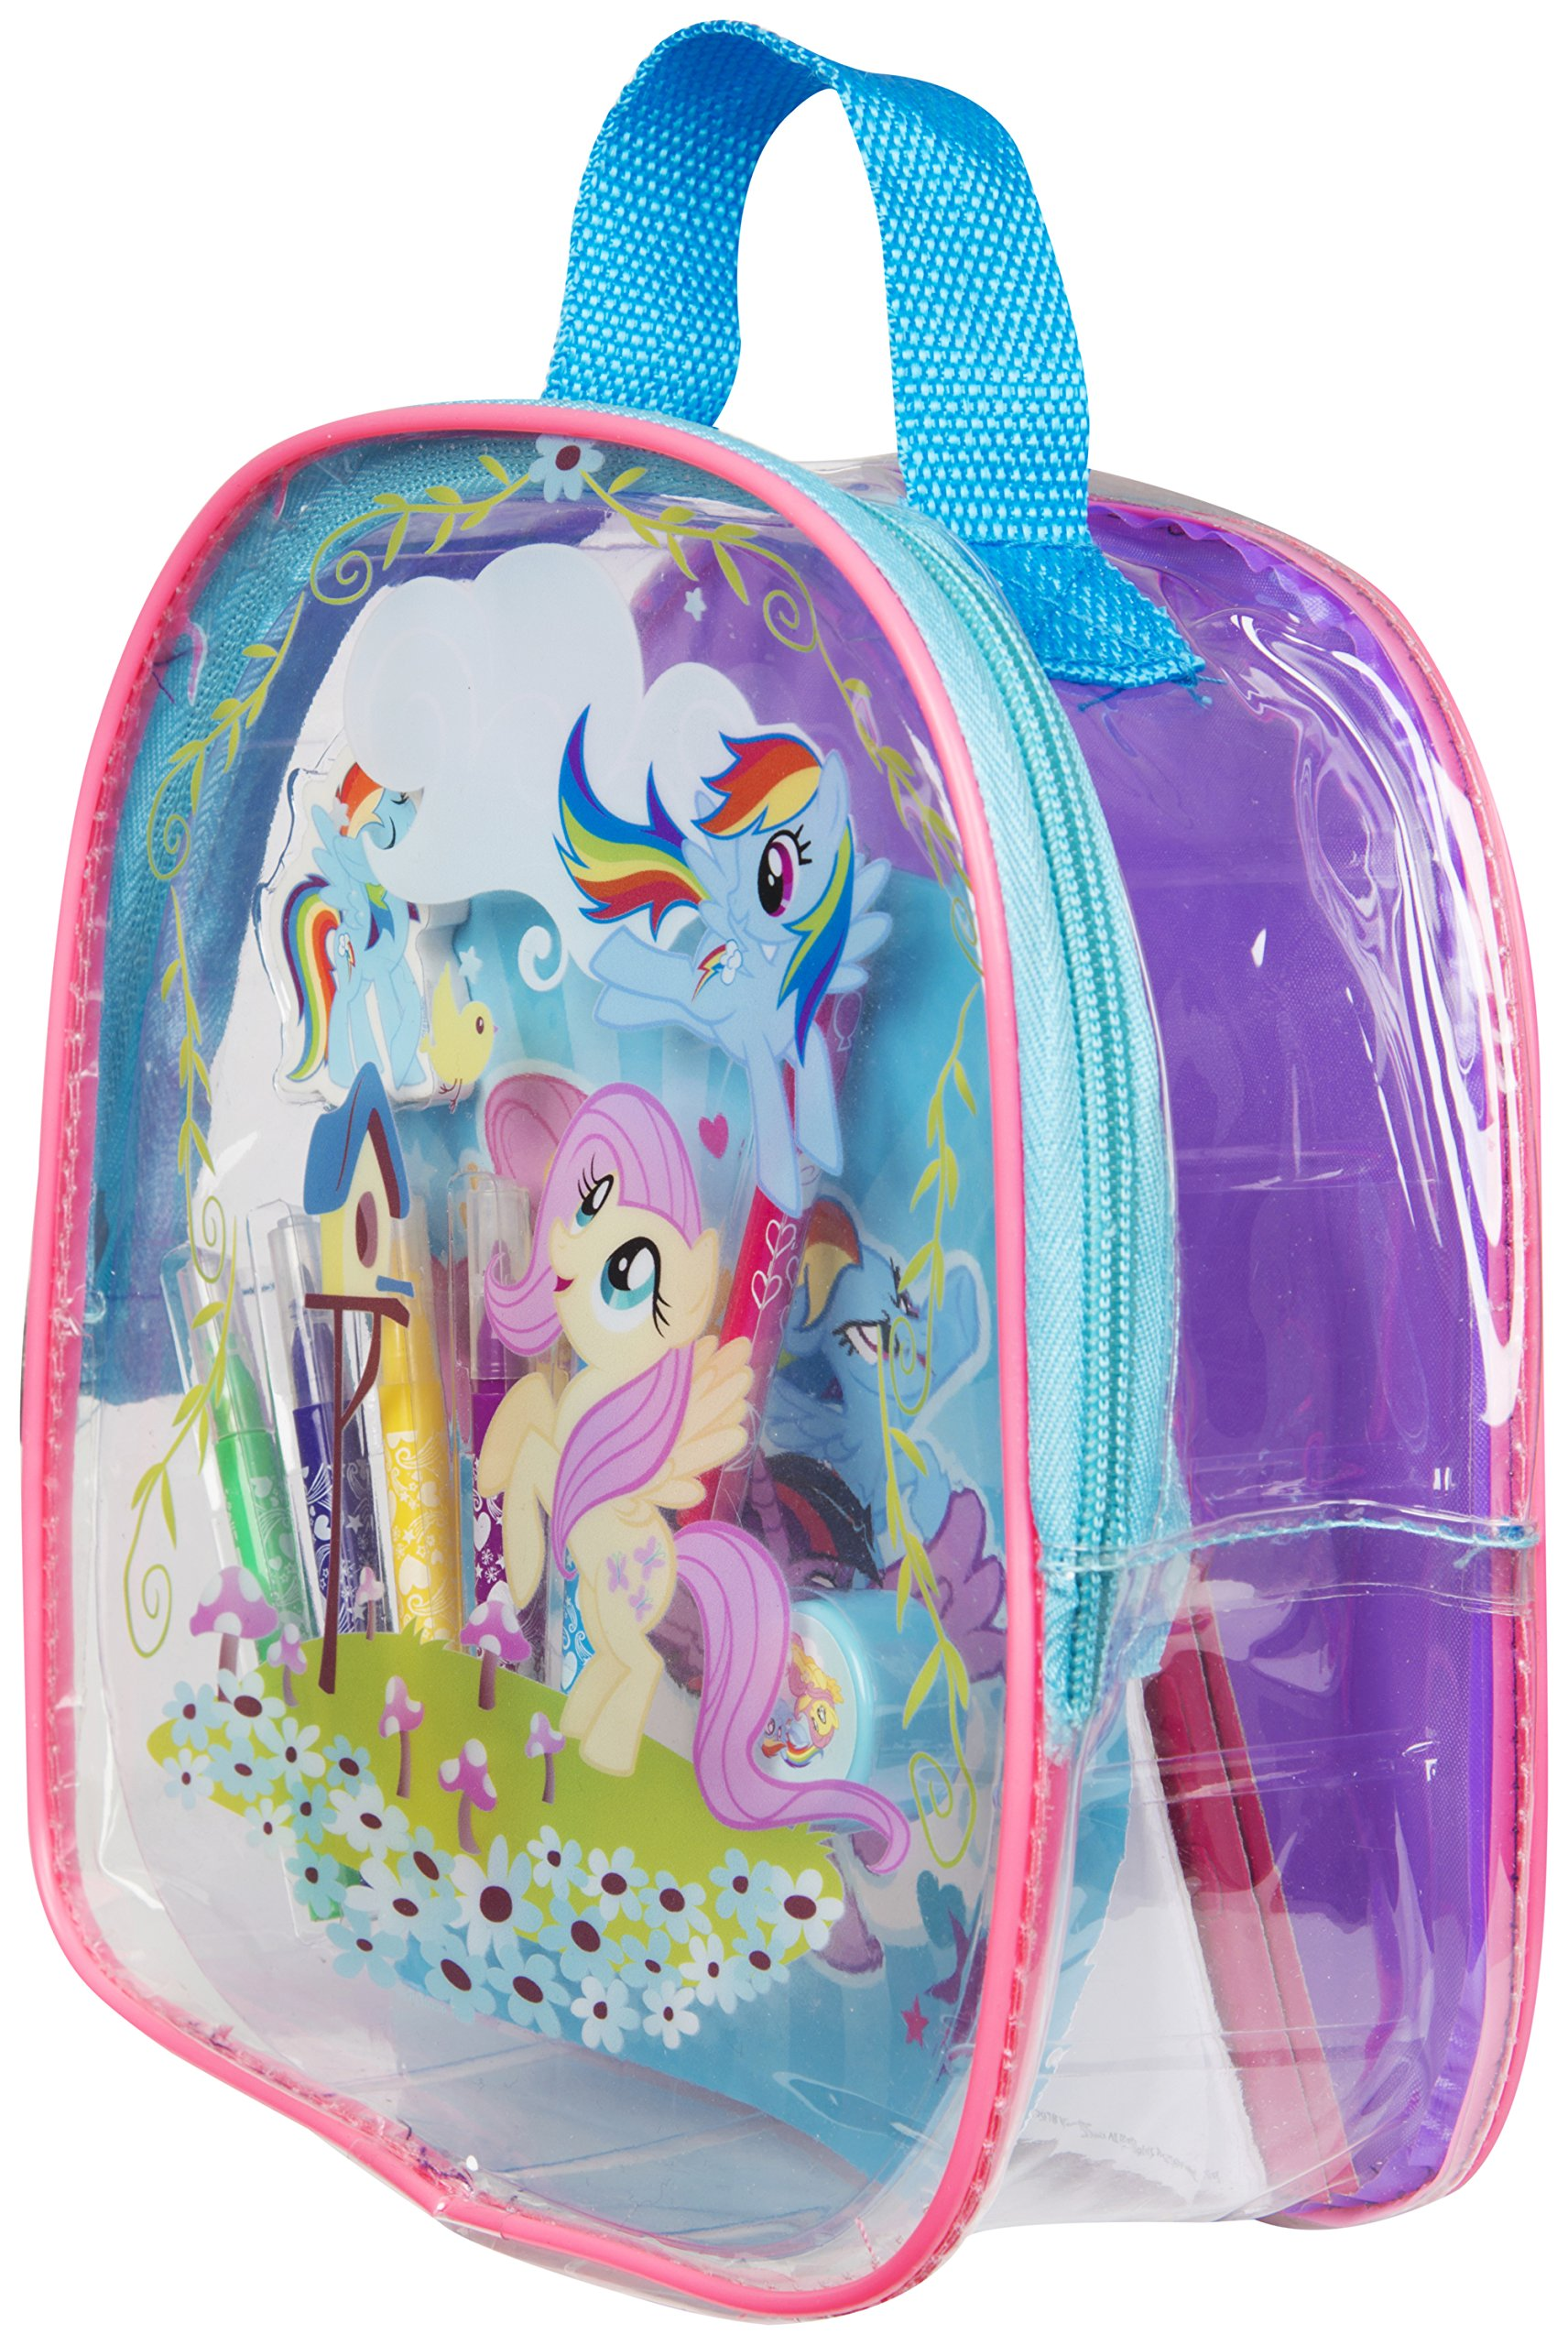 Sambro My My little Pony Arts and Crafts Filled Backpack Drawing Stencil kit for Kids Educational Support Multicolour